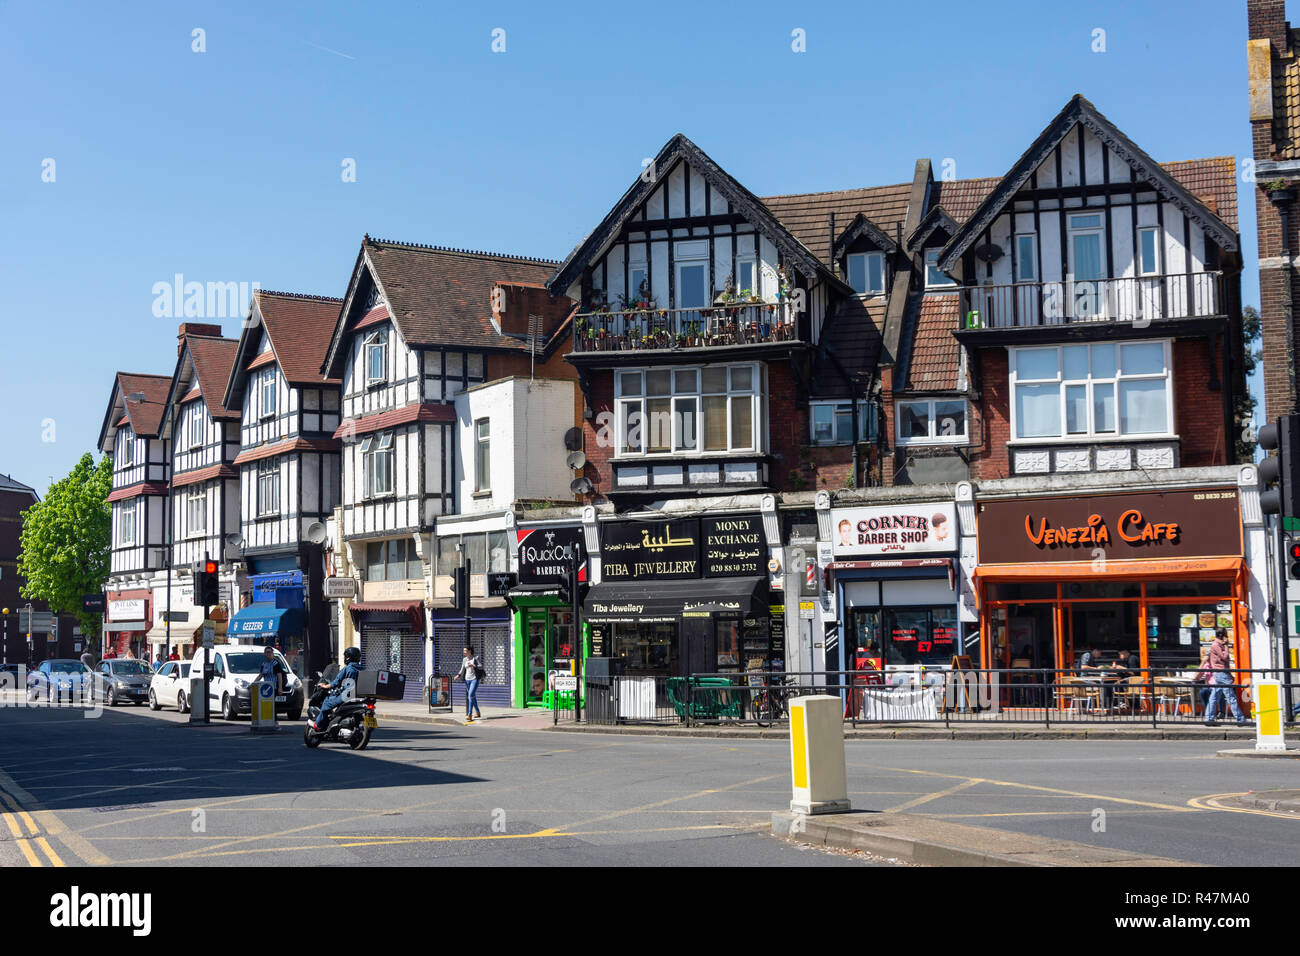 High Road, Willesden Green, Willesden, London Borough of Brent, Greater London, England, United Kingdom - Stock Image